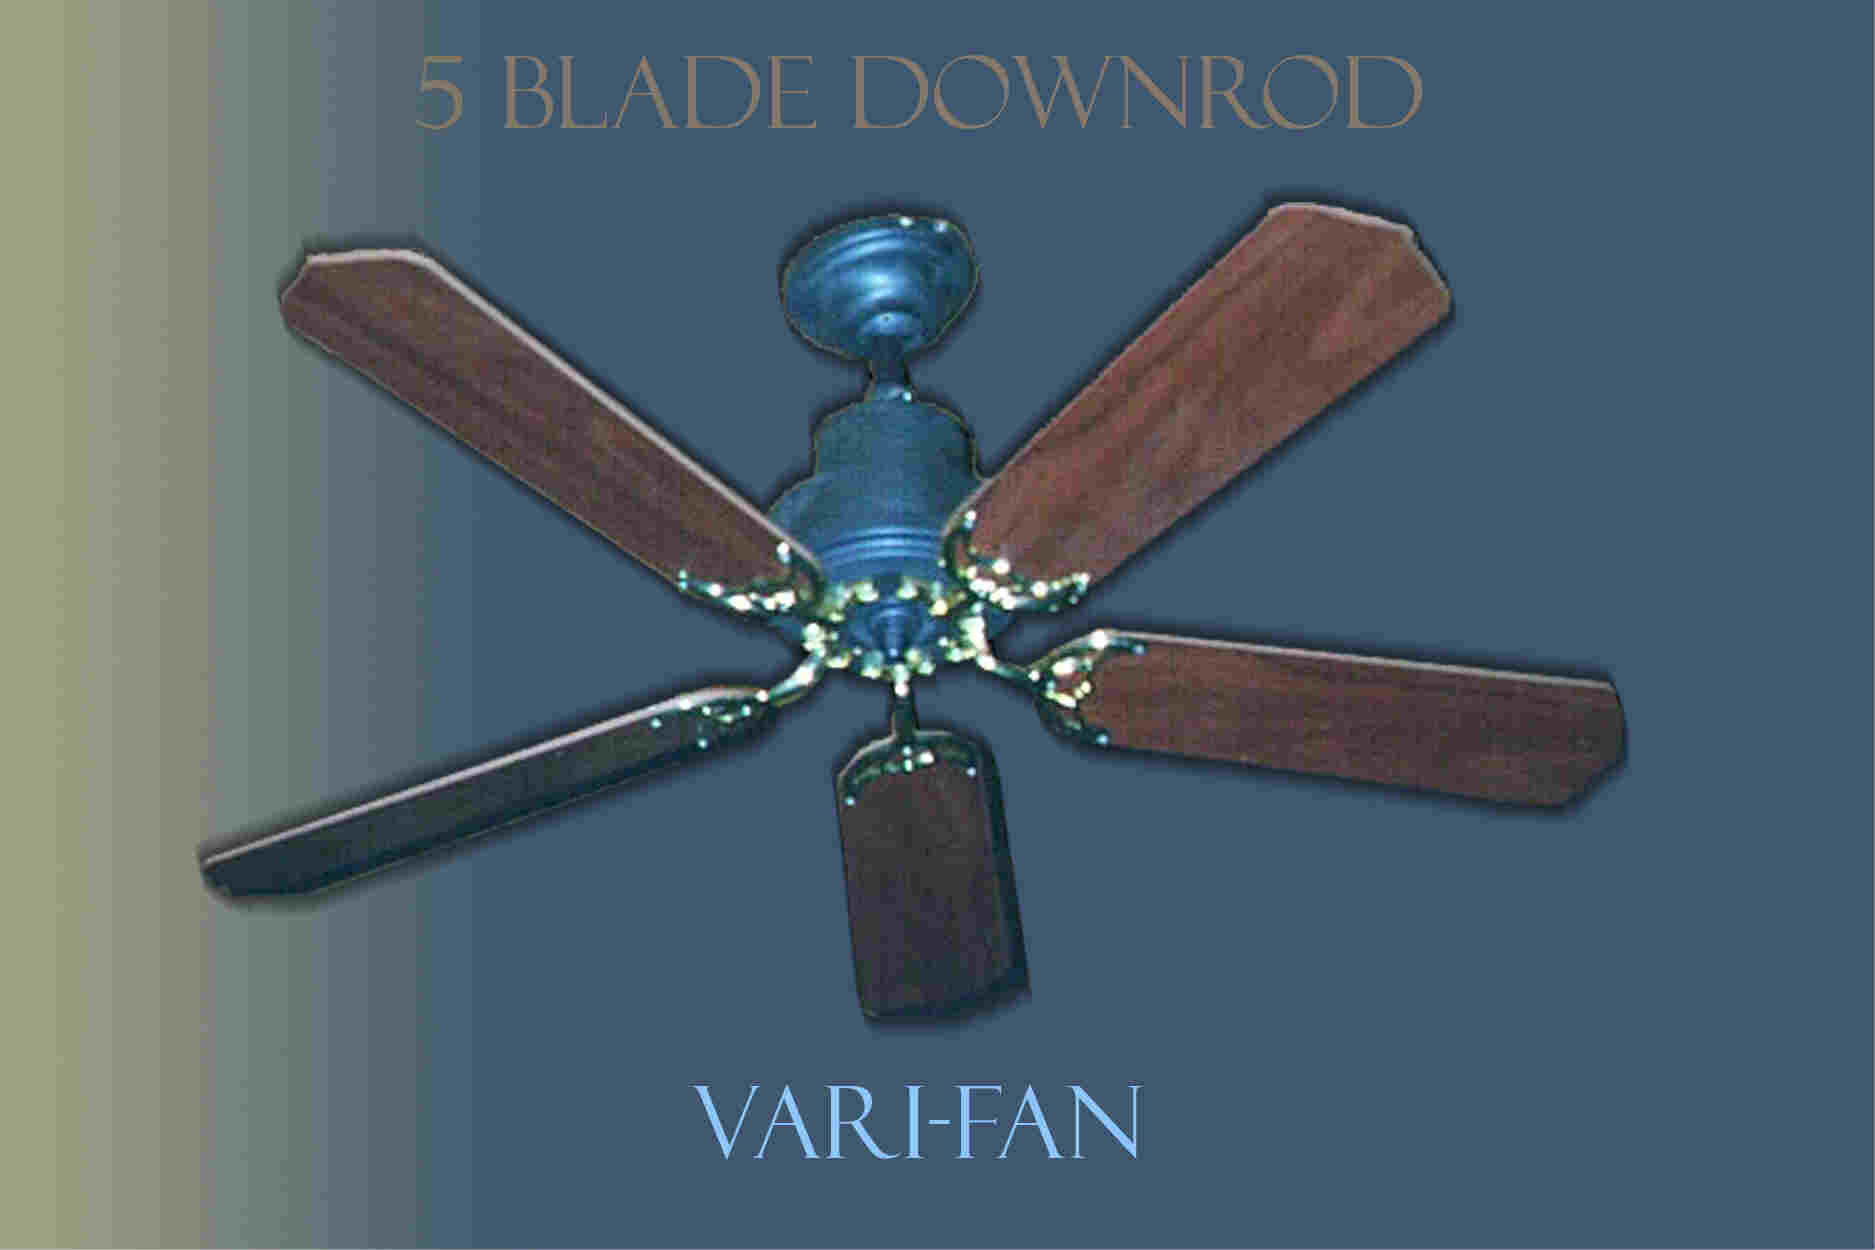 rod kich index ceiling fan products builders inch down paddle jsp fans residential ceilings